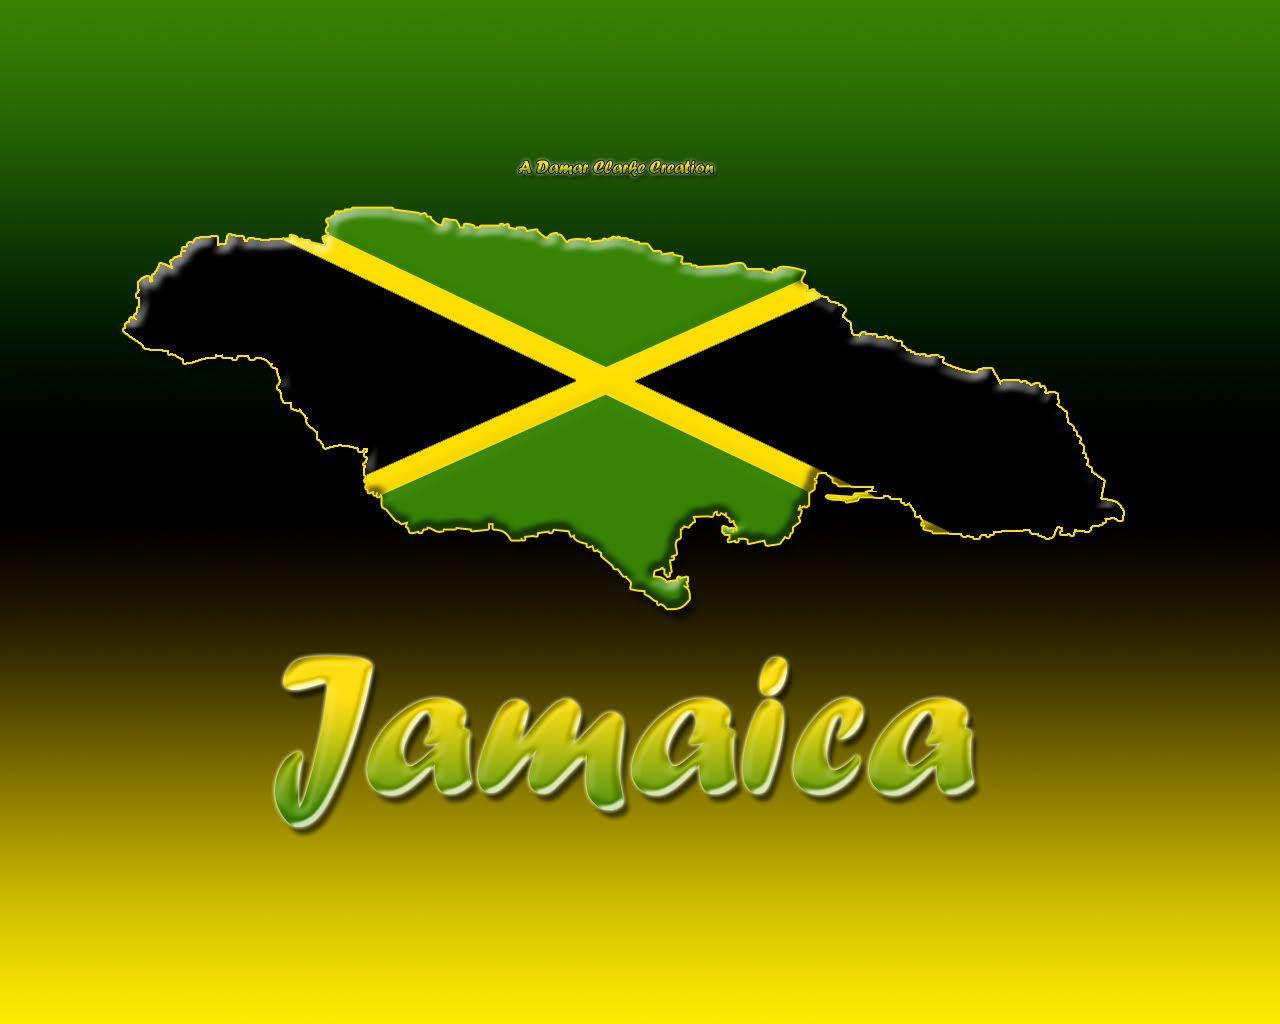 Happy Jamaican Independence day 2014 Image, Happy Jamaican